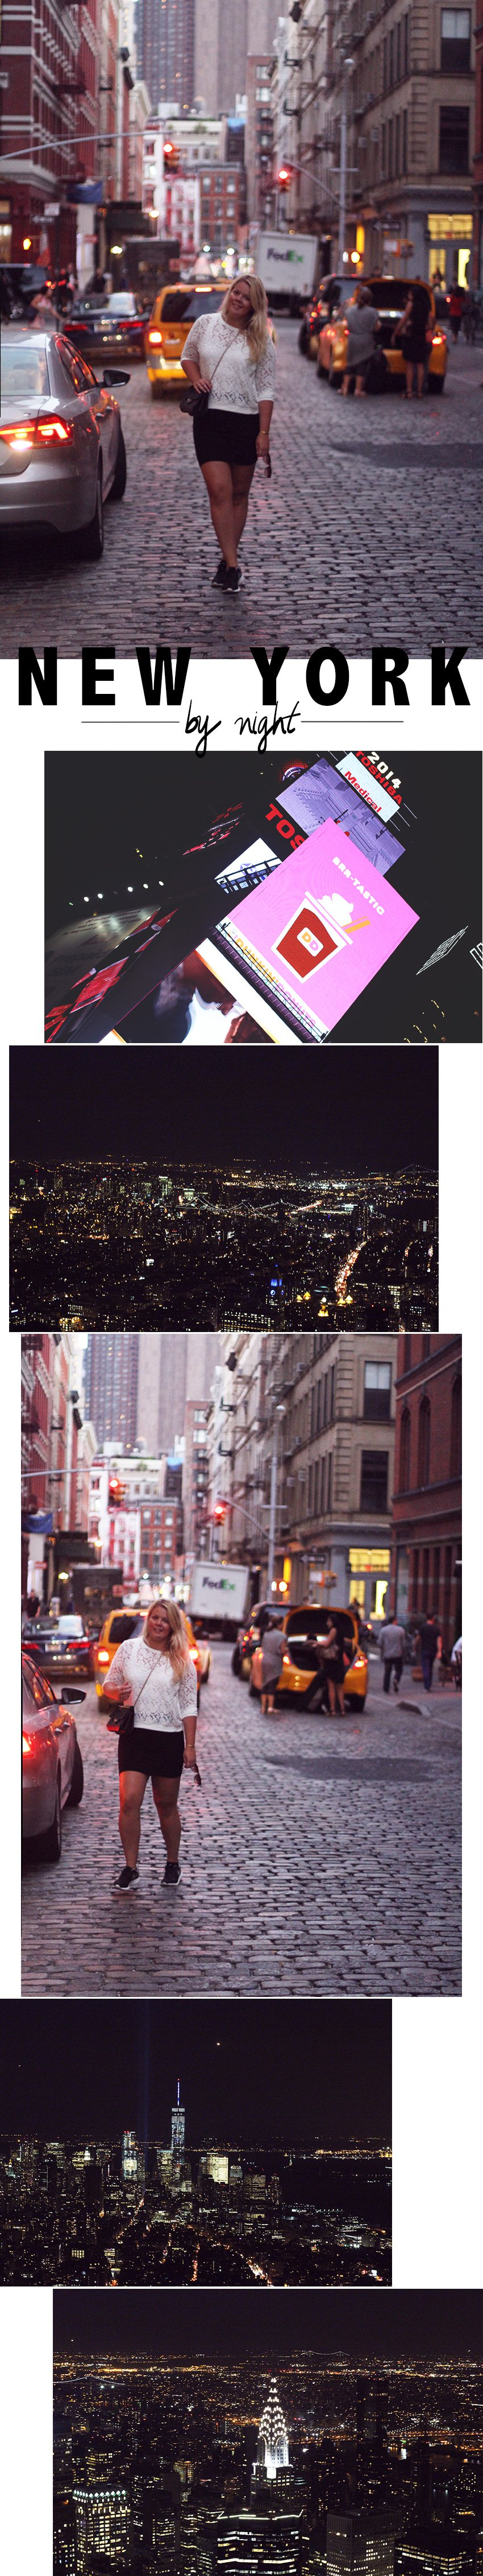 NEW YORK CITY <i>by night</i>